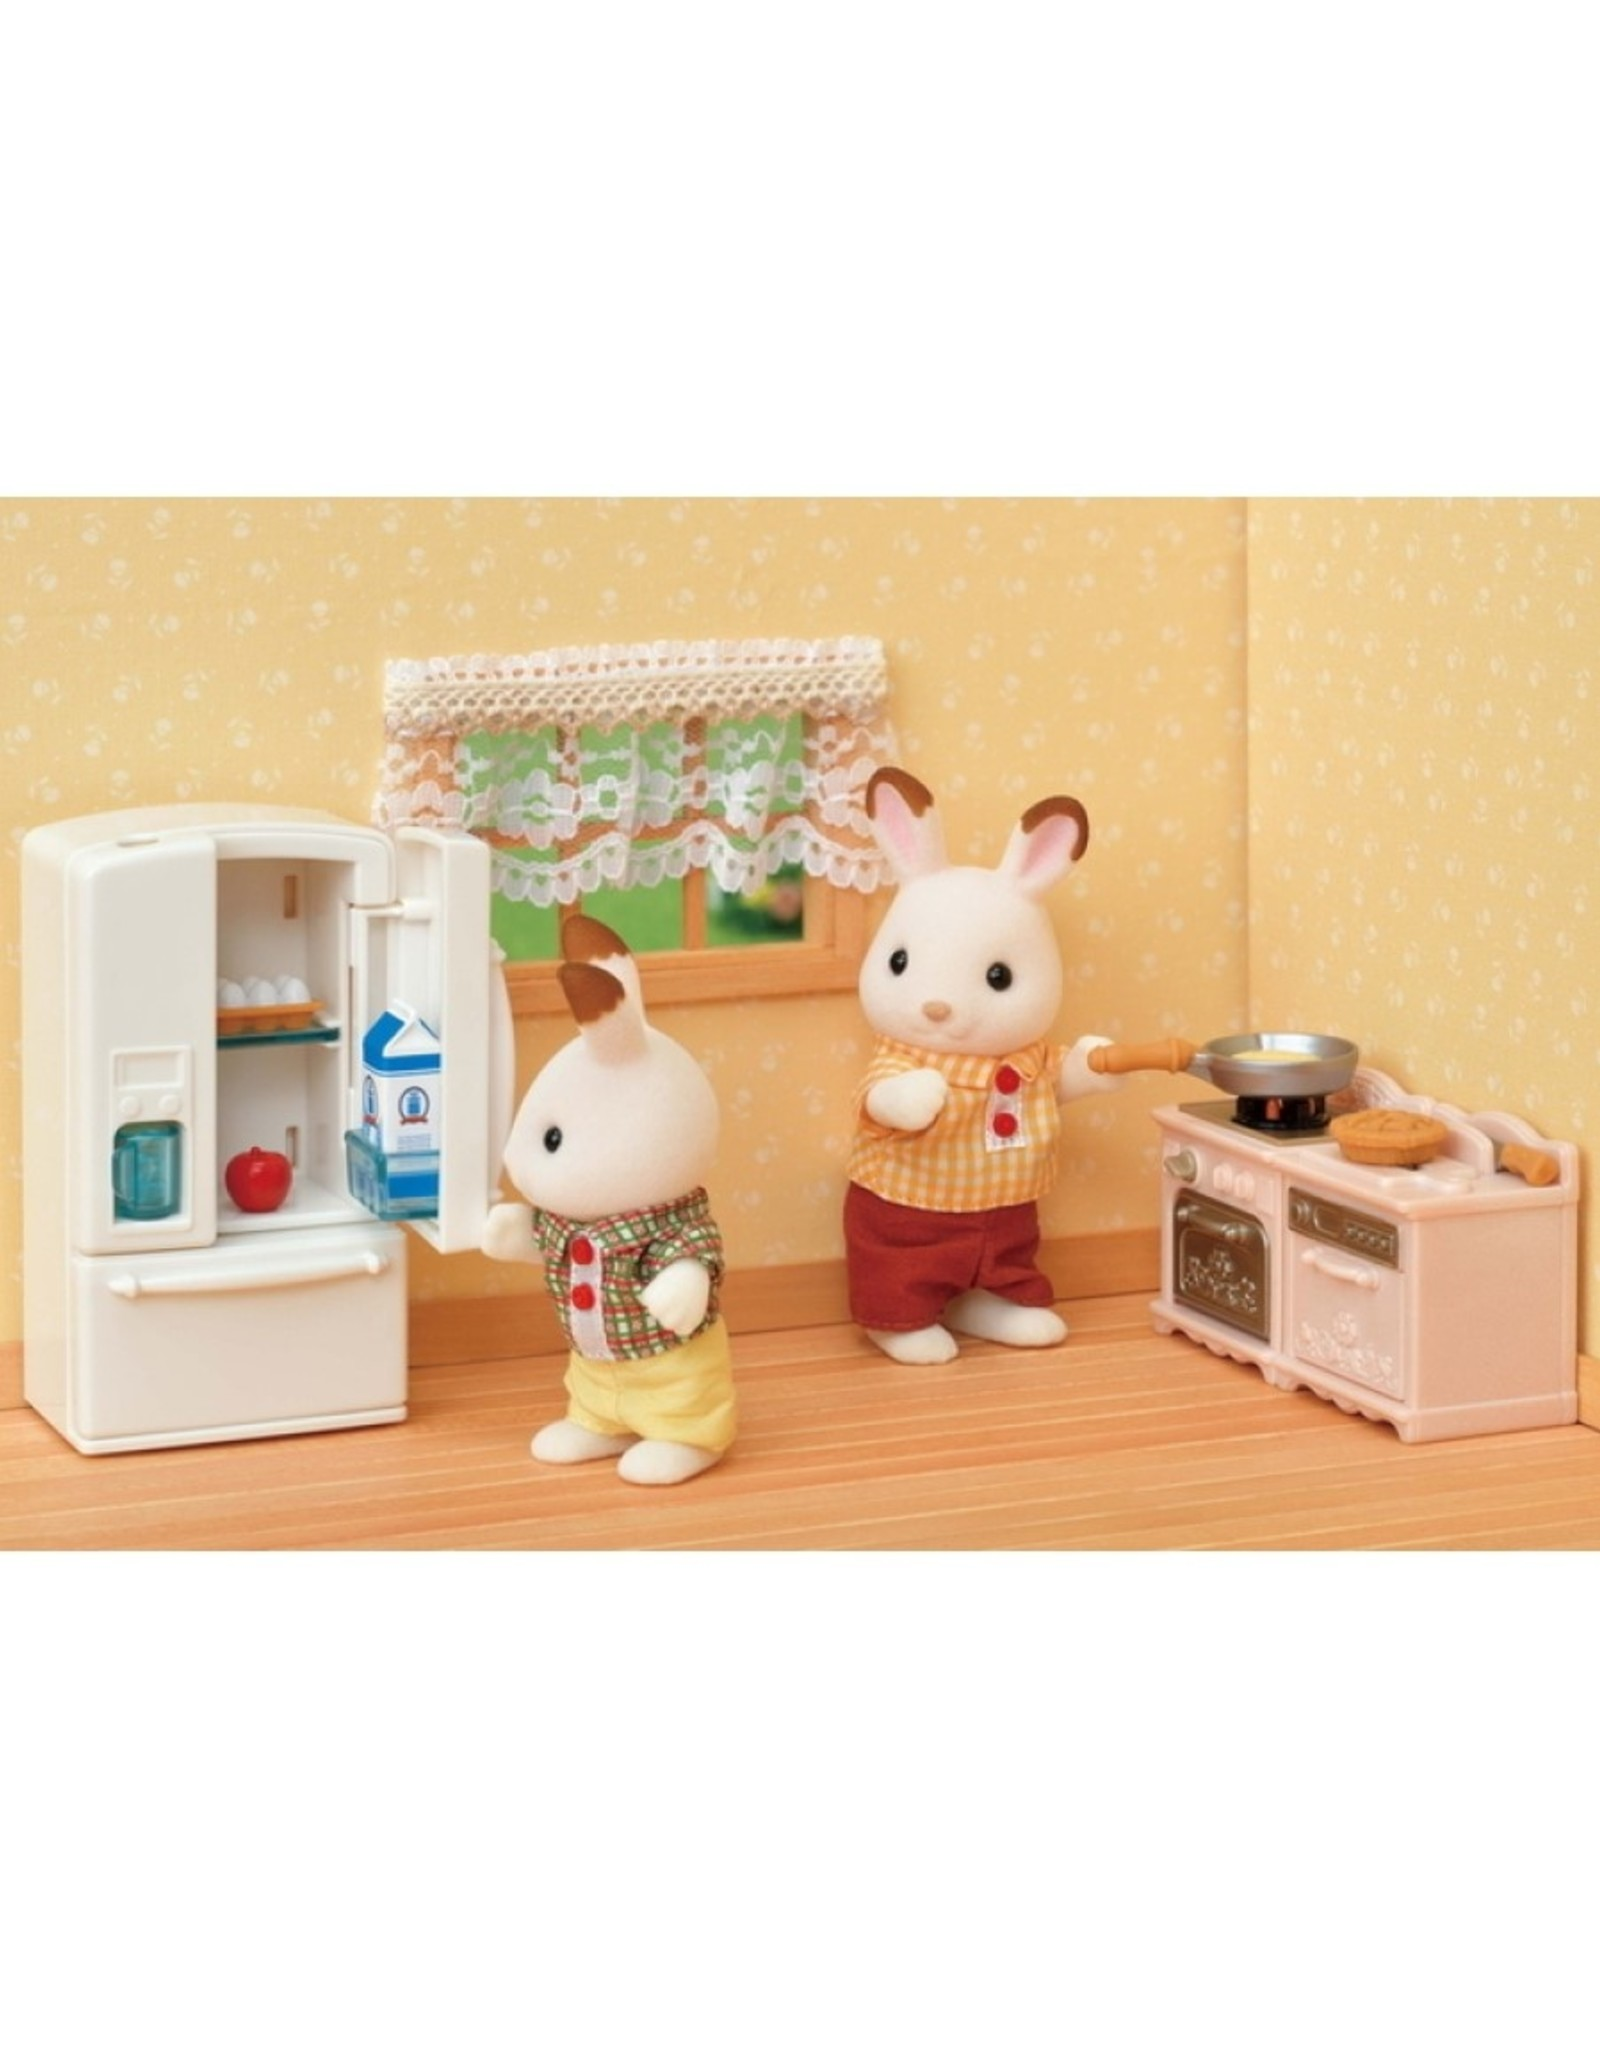 Calico Critters CC Playful Starter Furniture Set